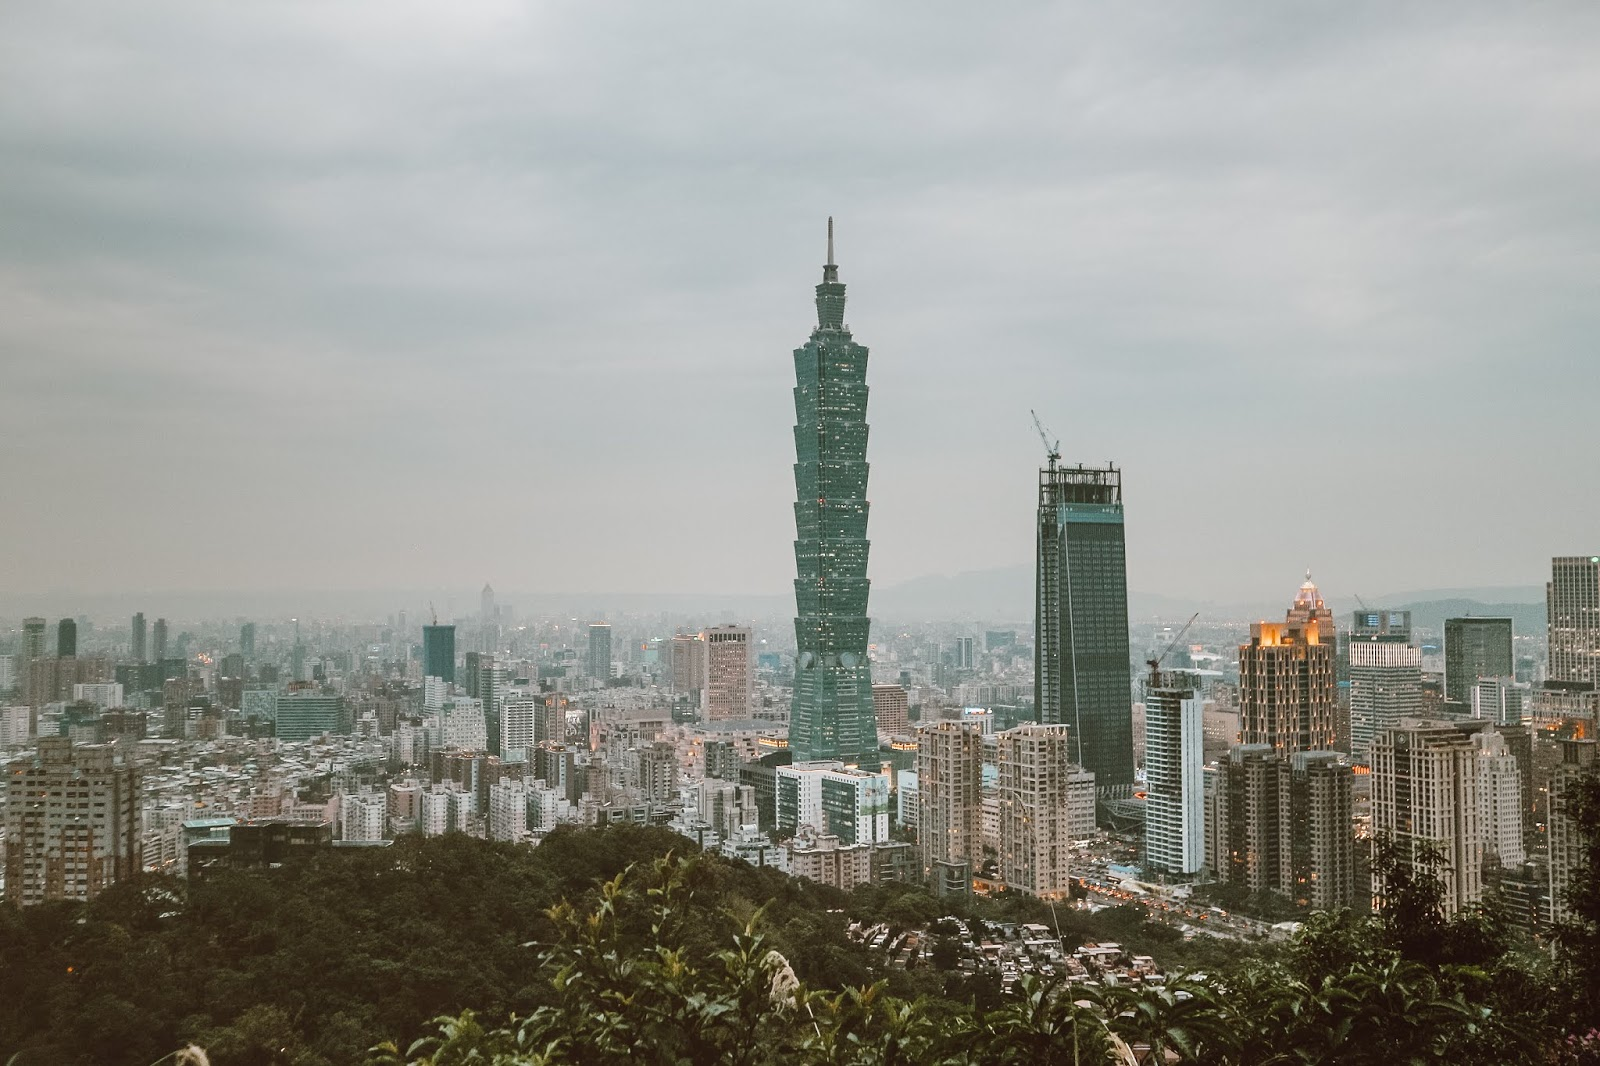 Rêveuse City Guide: Top 5 Places In Taipei, Taiwan